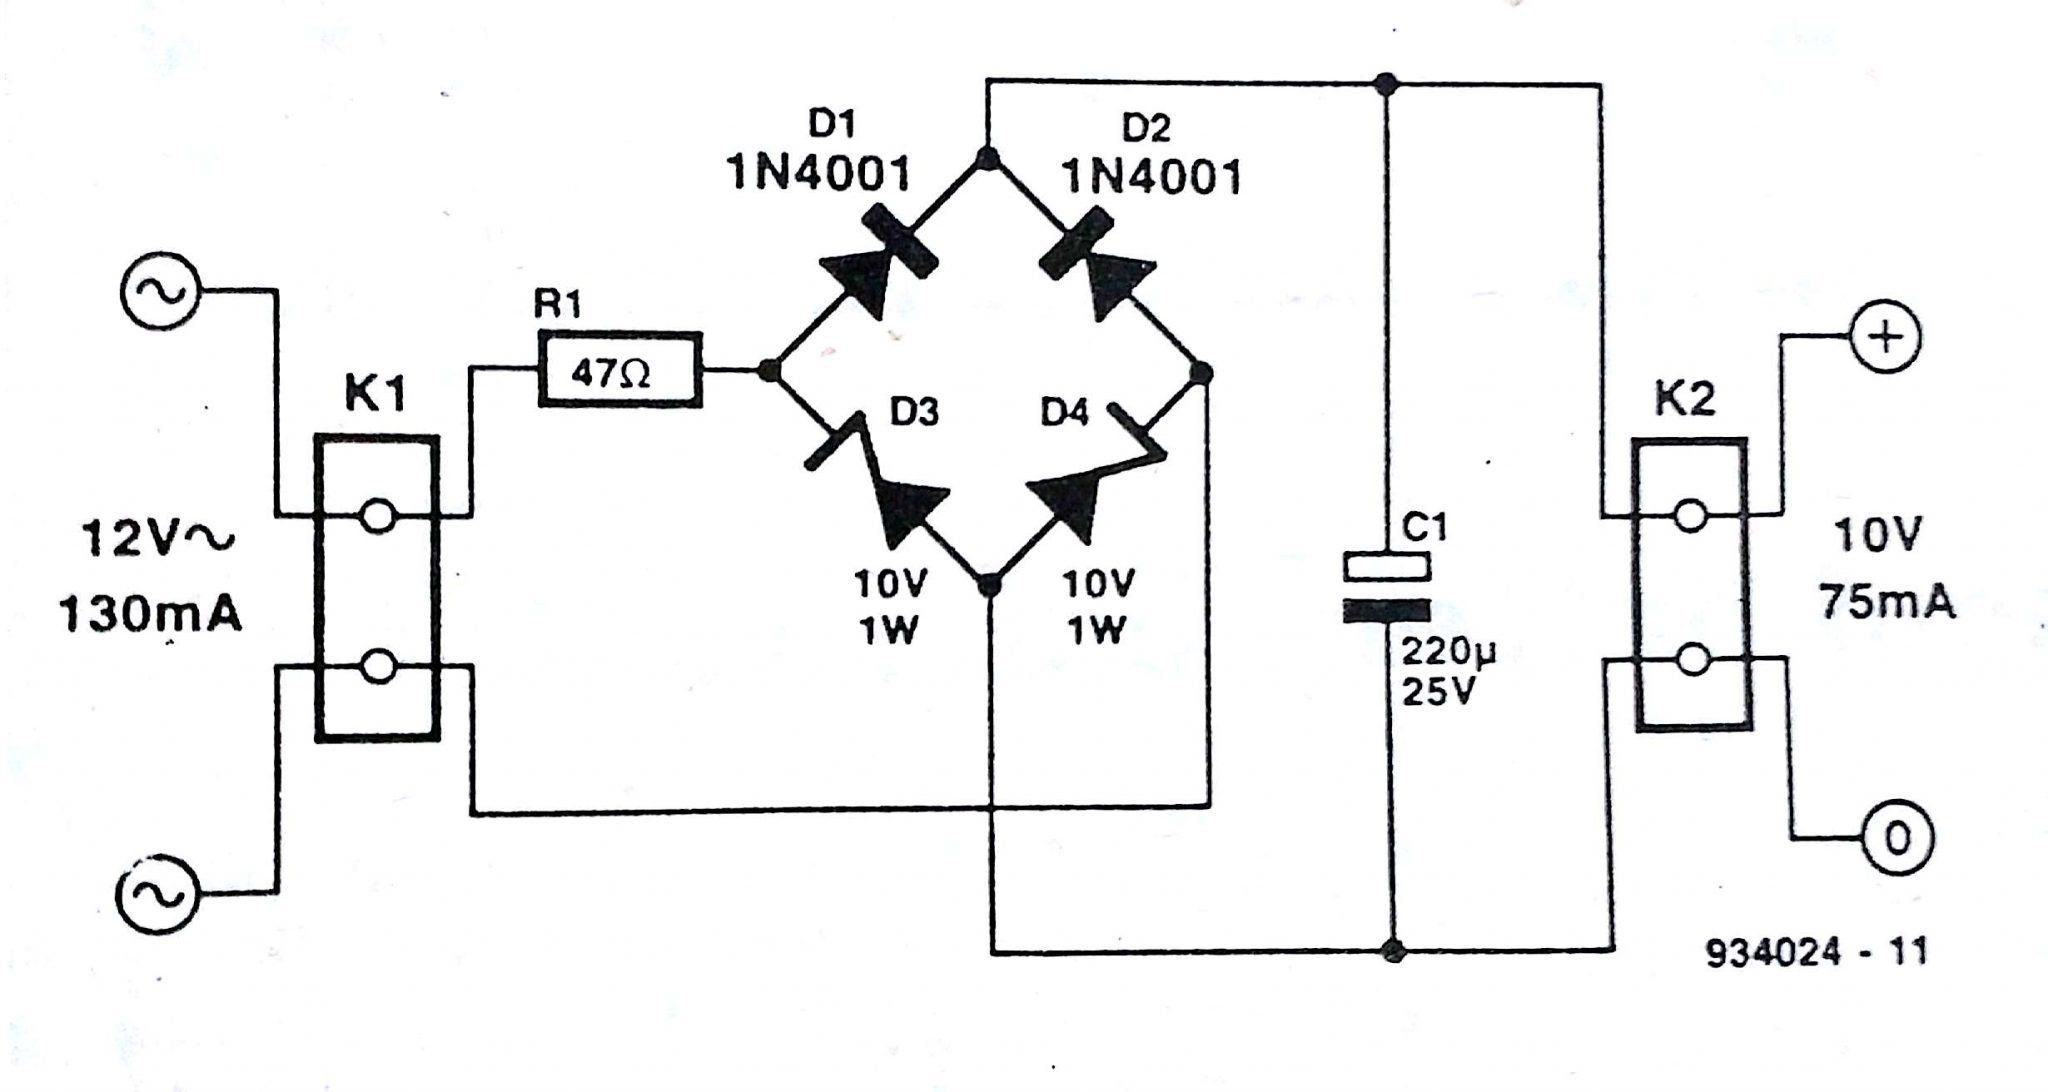 wiring diagram for a rectifier wiring diagram toolbox wiring diagram regulator rectifier circuit diagram rectifier wiring [ 2048 x 1092 Pixel ]